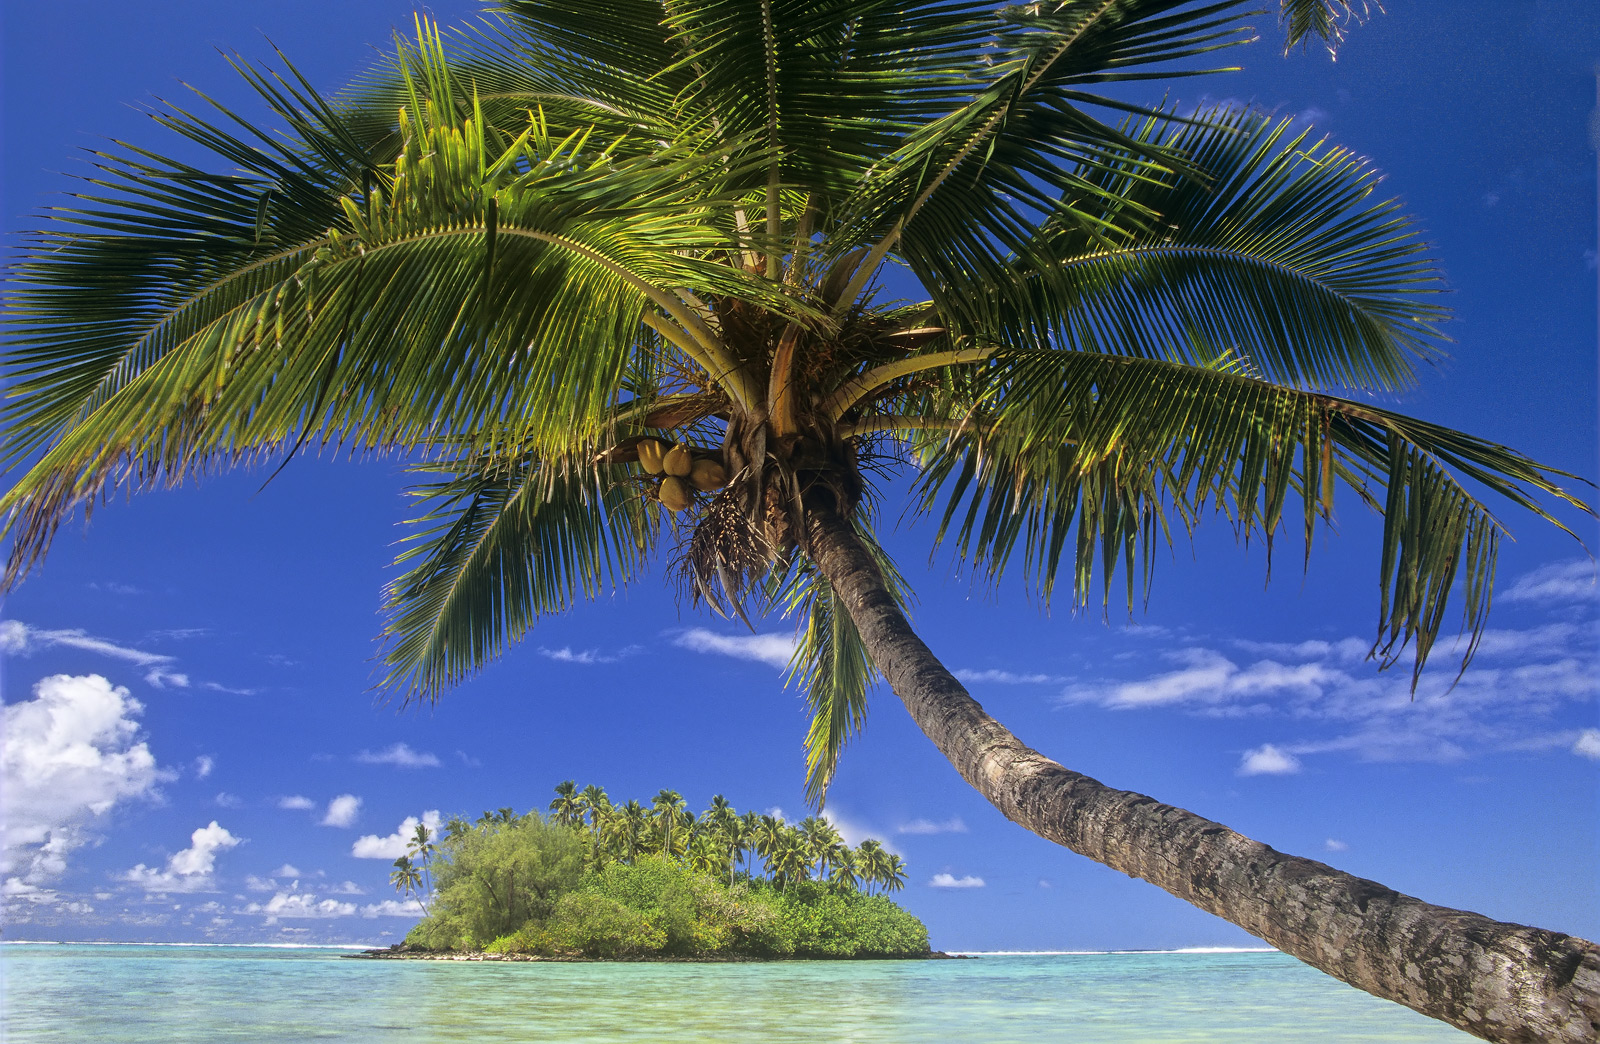 A quintessentially tropical island scene that shouts wish you were here. I photographed this on a bright breezy morning...